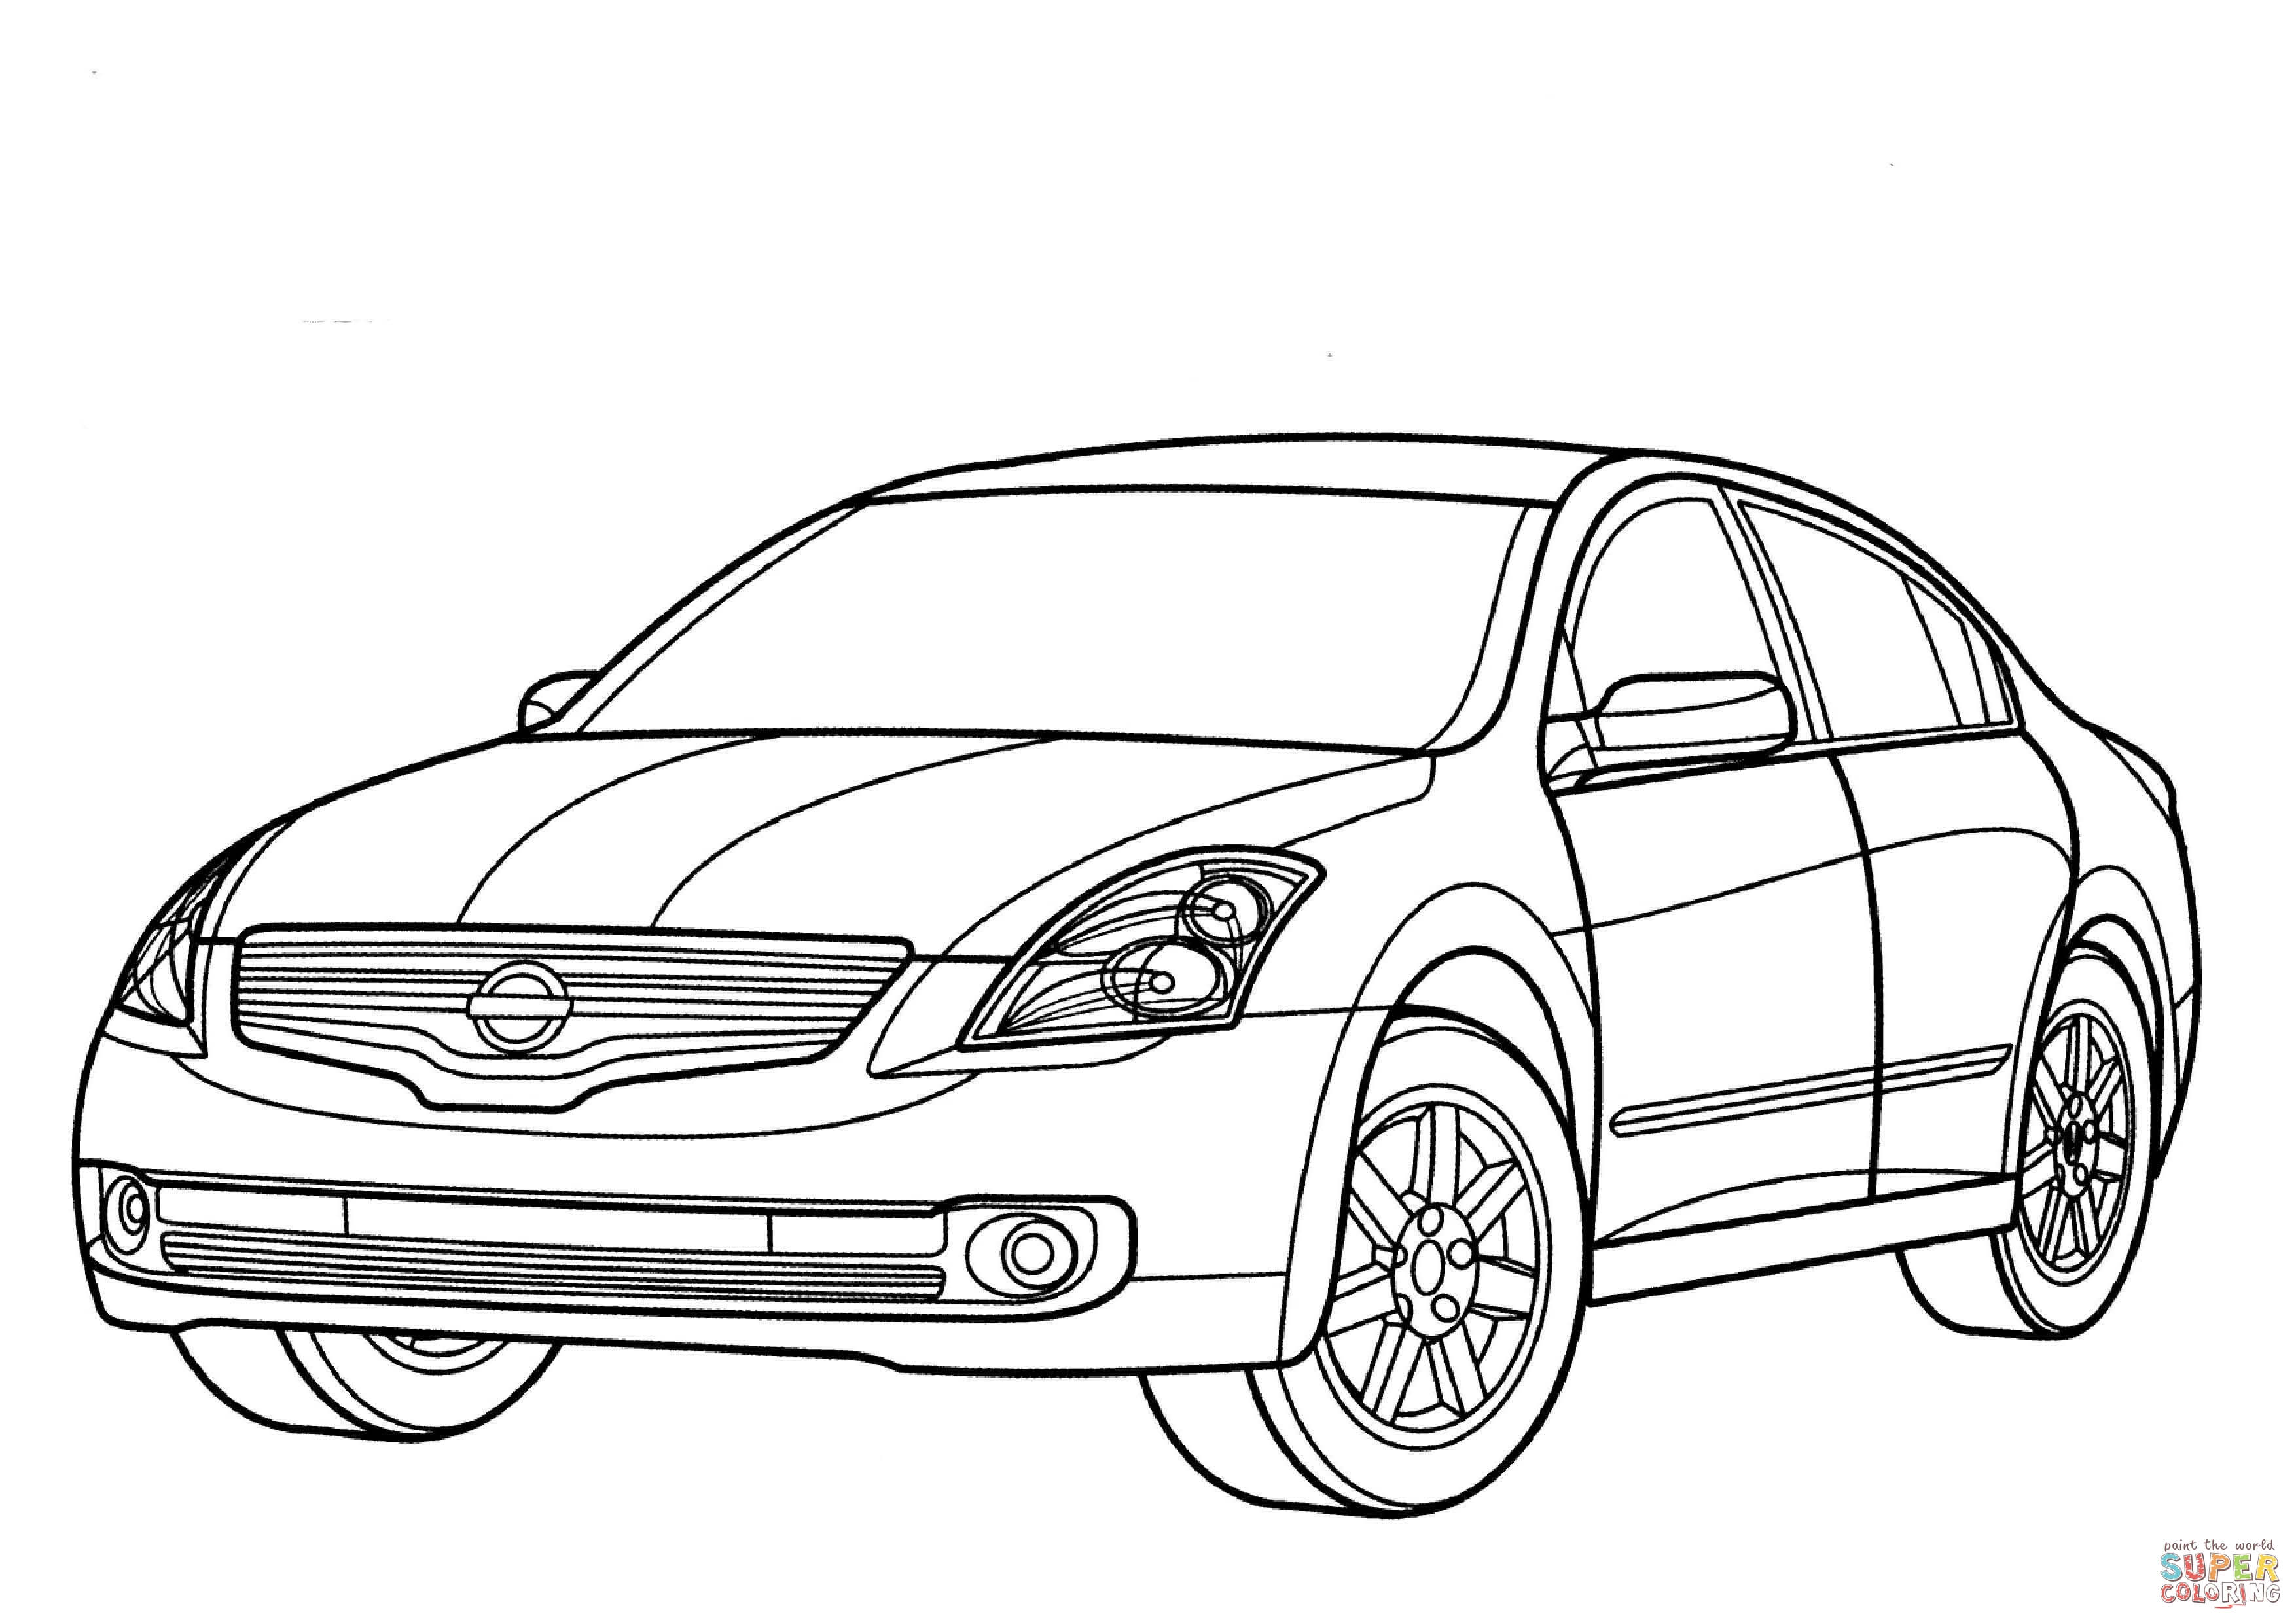 Nissan Altima Hybrid Coloring Page